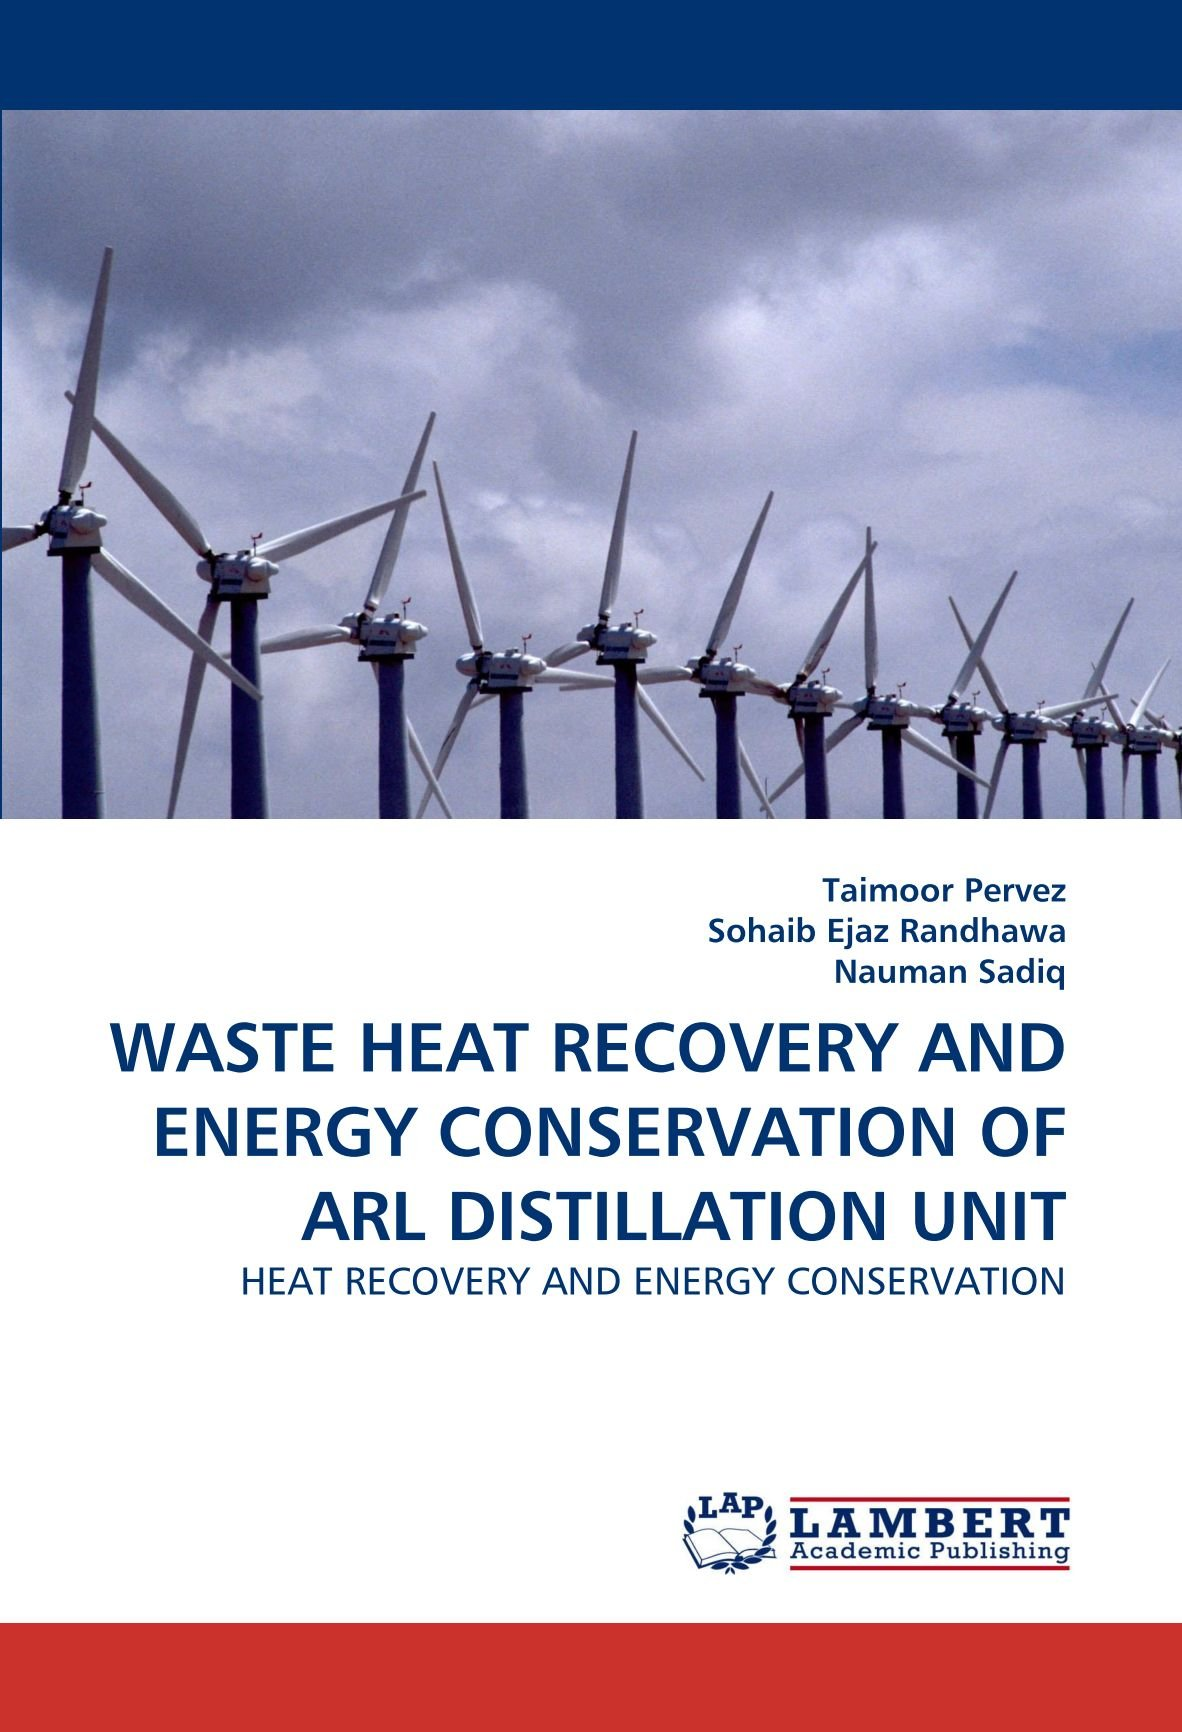 WASTE HEAT RECOVERY AND ENERGY CONSERVATION OF ARL DISTILLATION